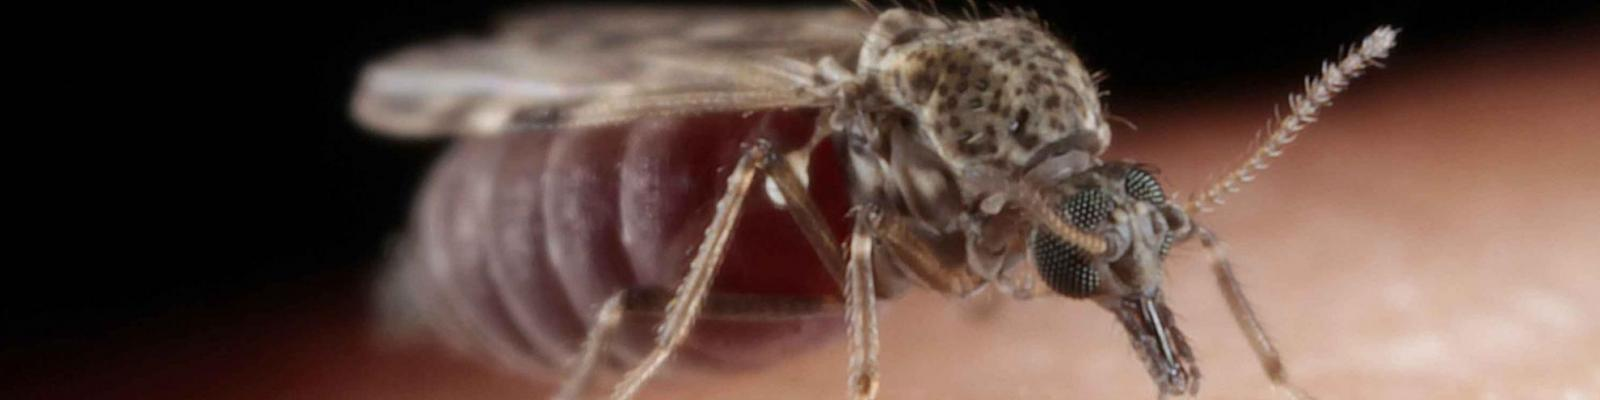 Extreme close up of a Culicoides nubeculosus on skin with blood droplets